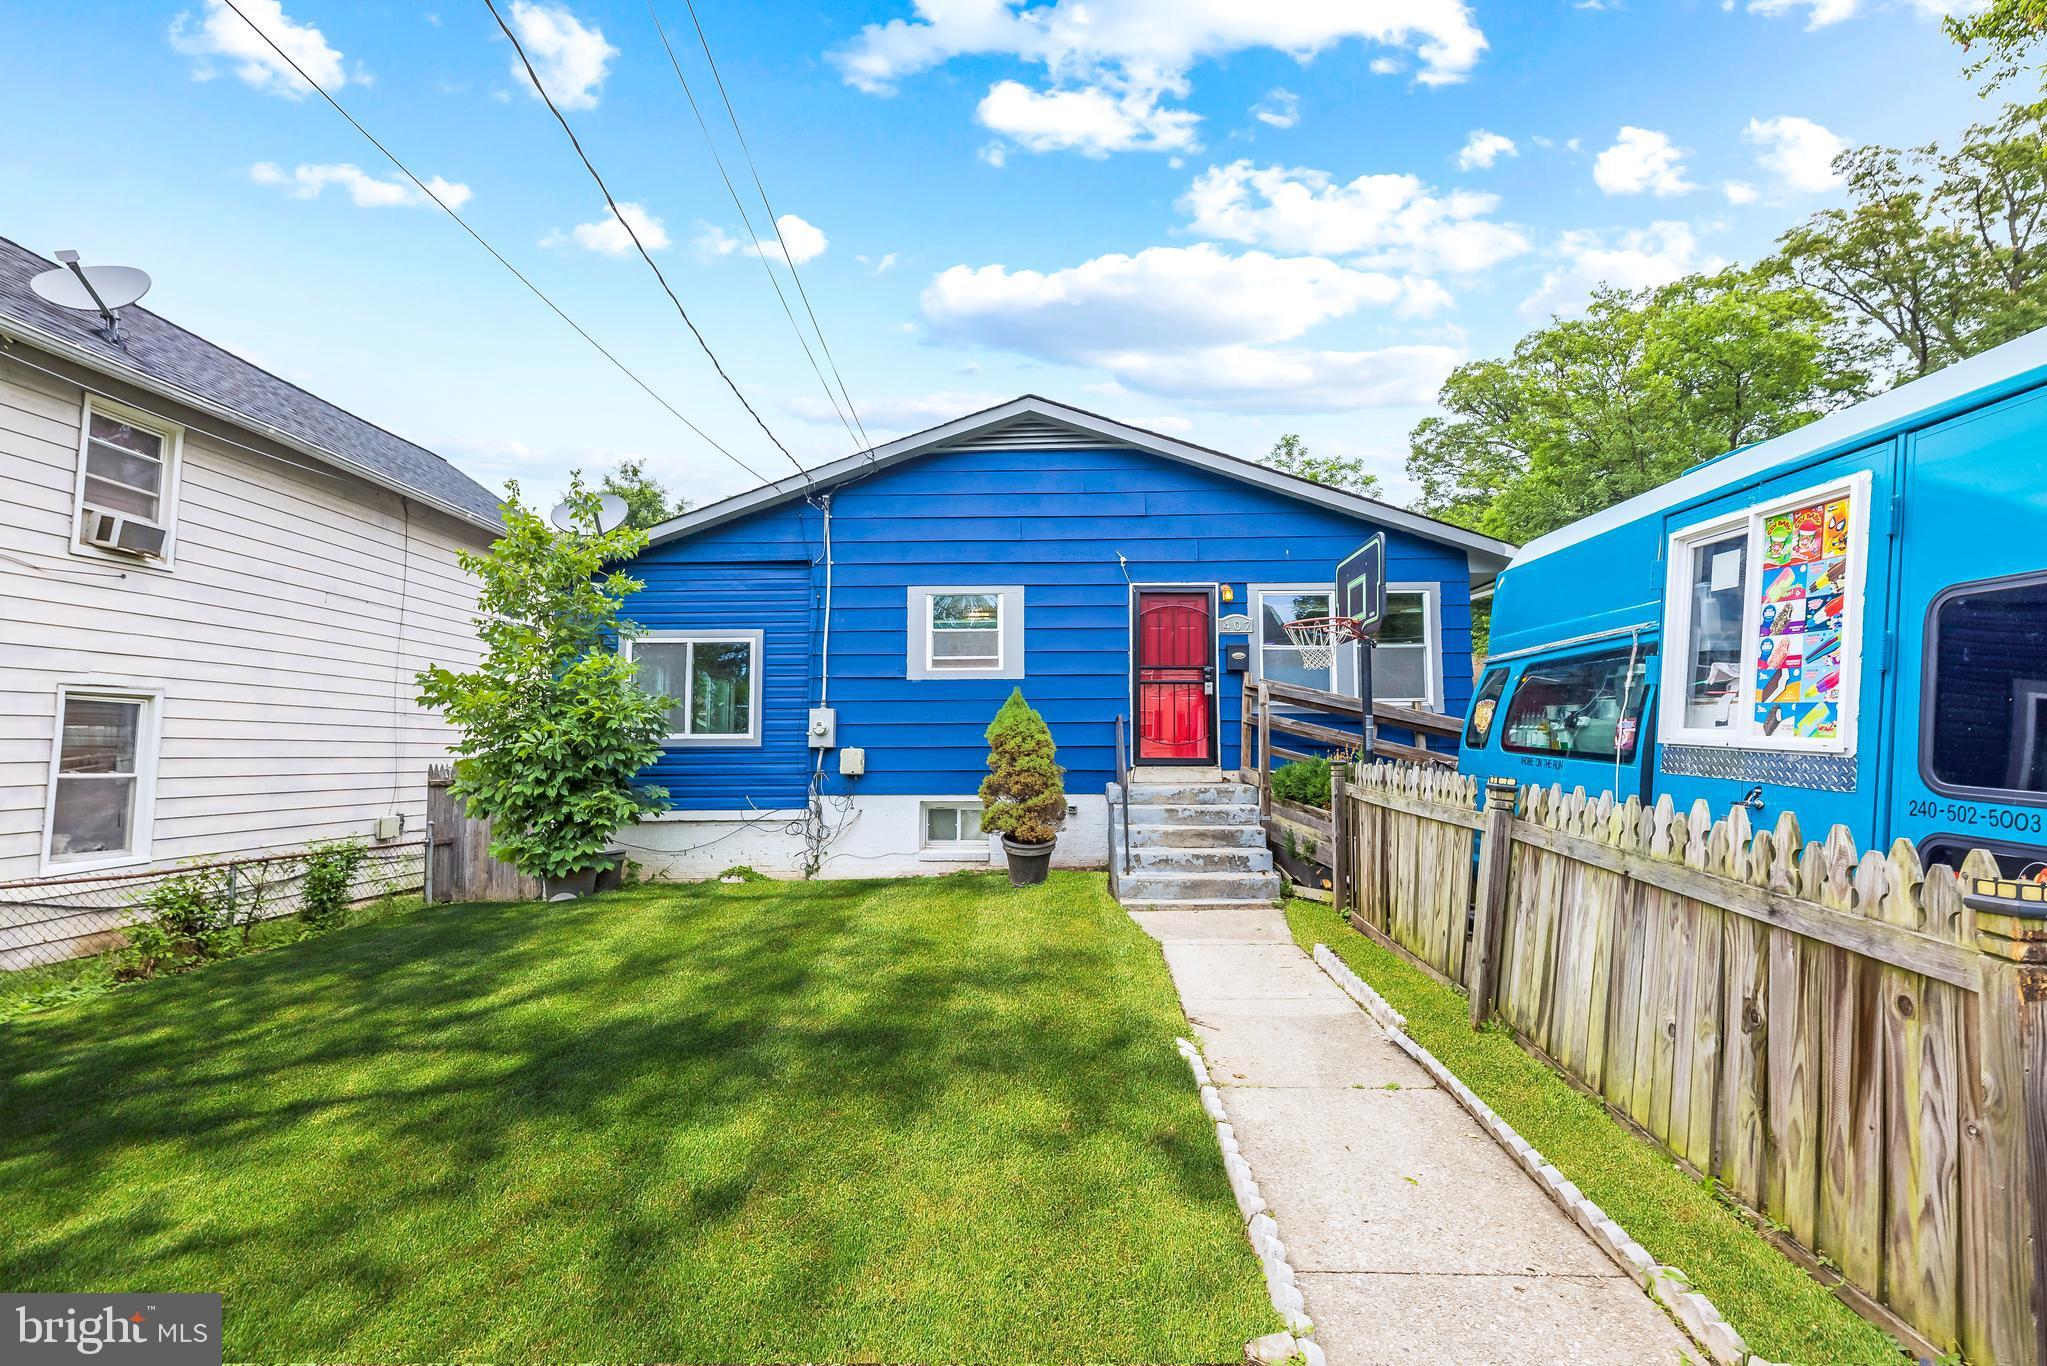 Vibrant and Spacious Home with Fully Finished Basement! Located only minutes from an array of conven